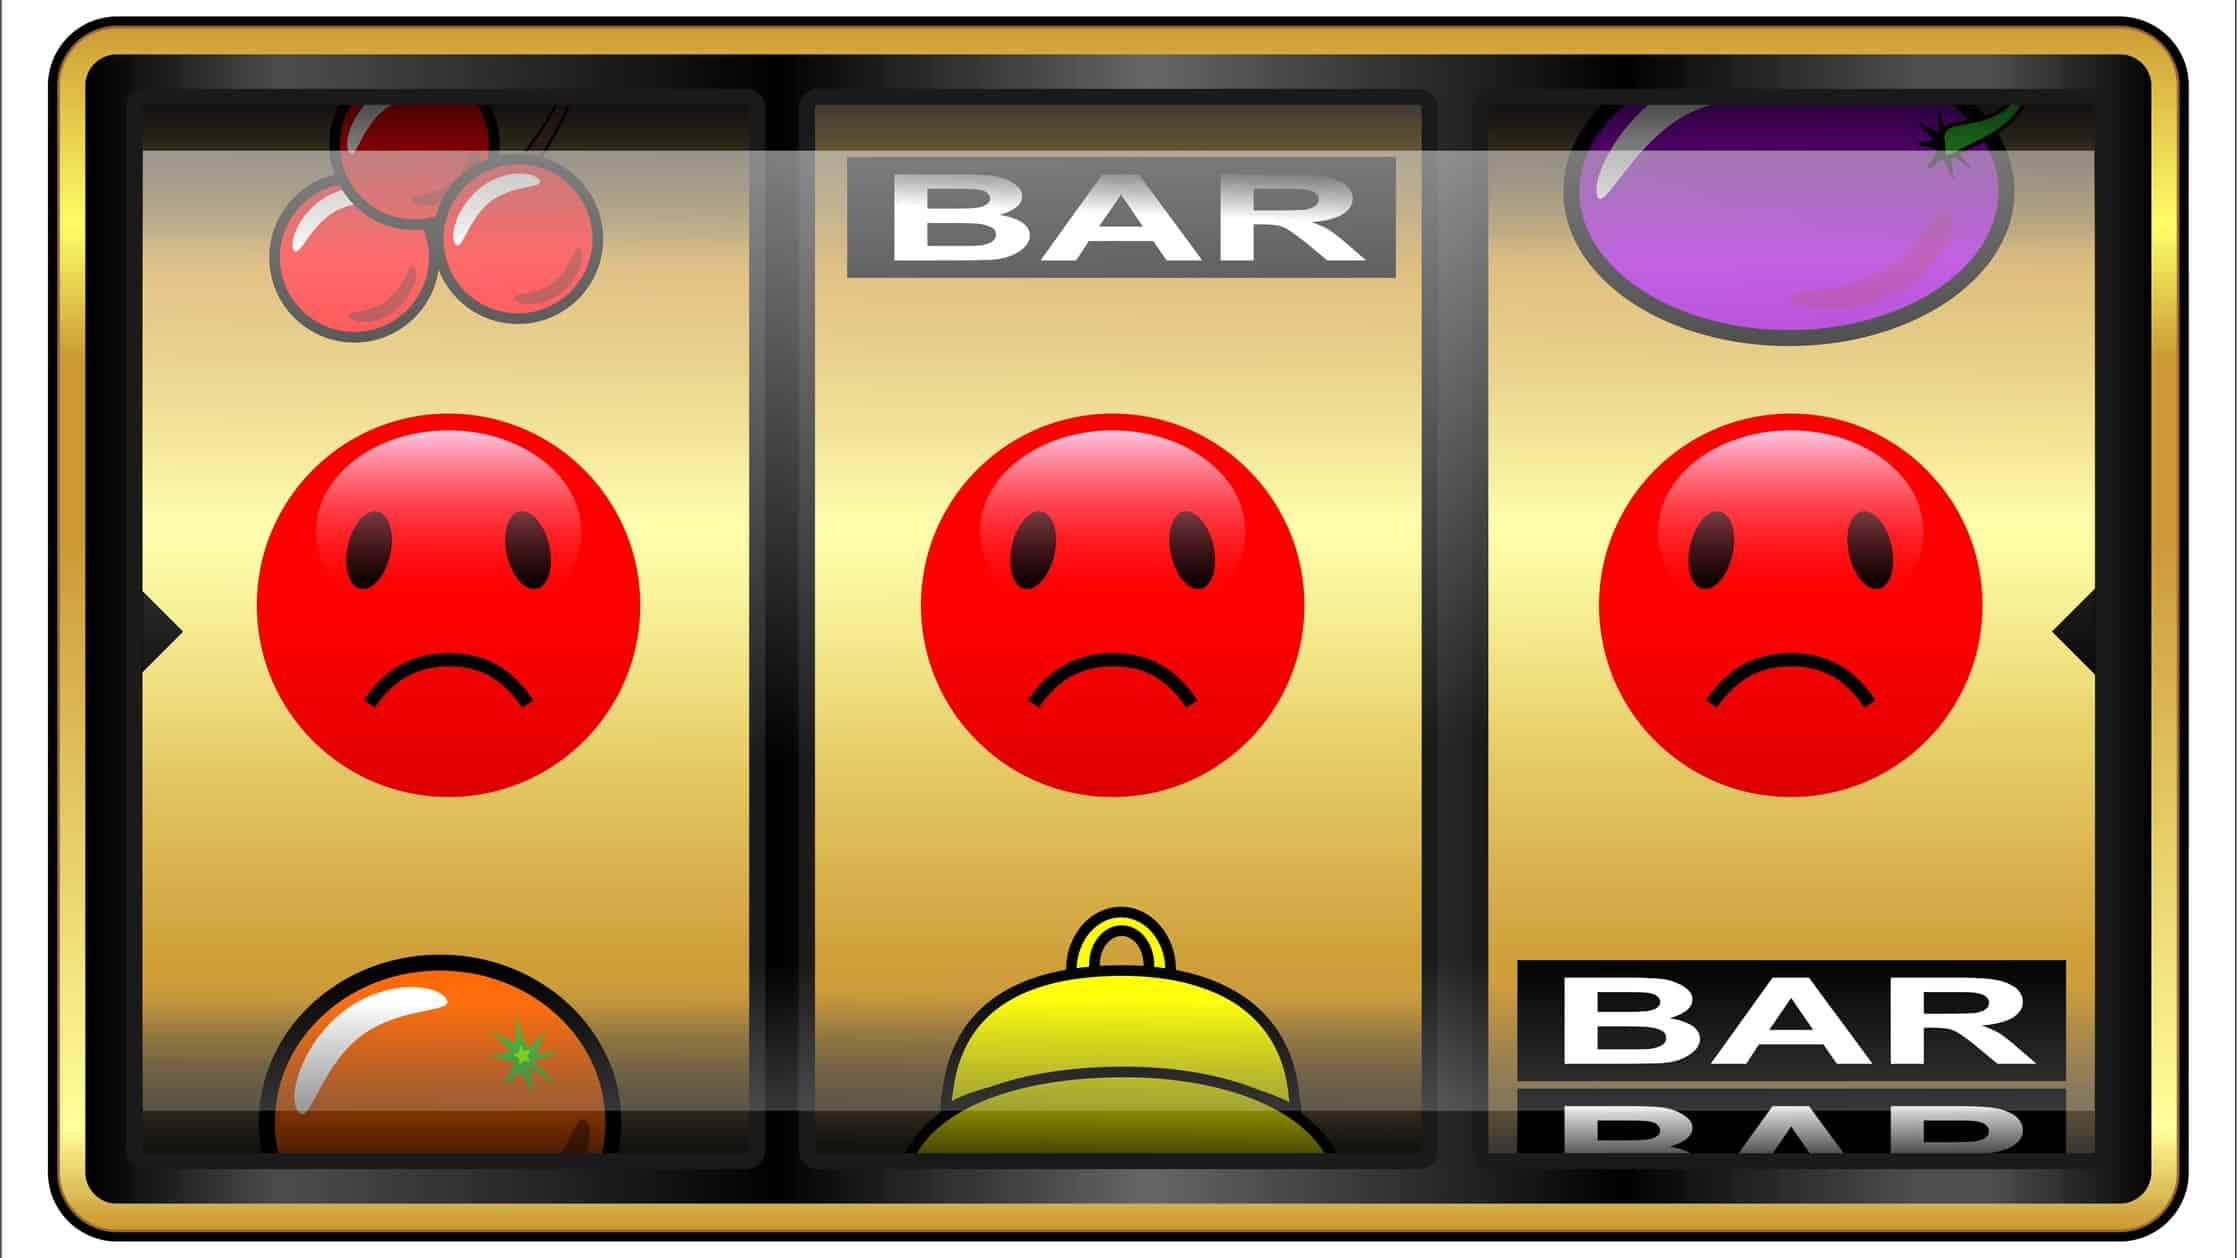 A slot machine with a row of red, sad faces, indicating a drop in the share price for gaming companies